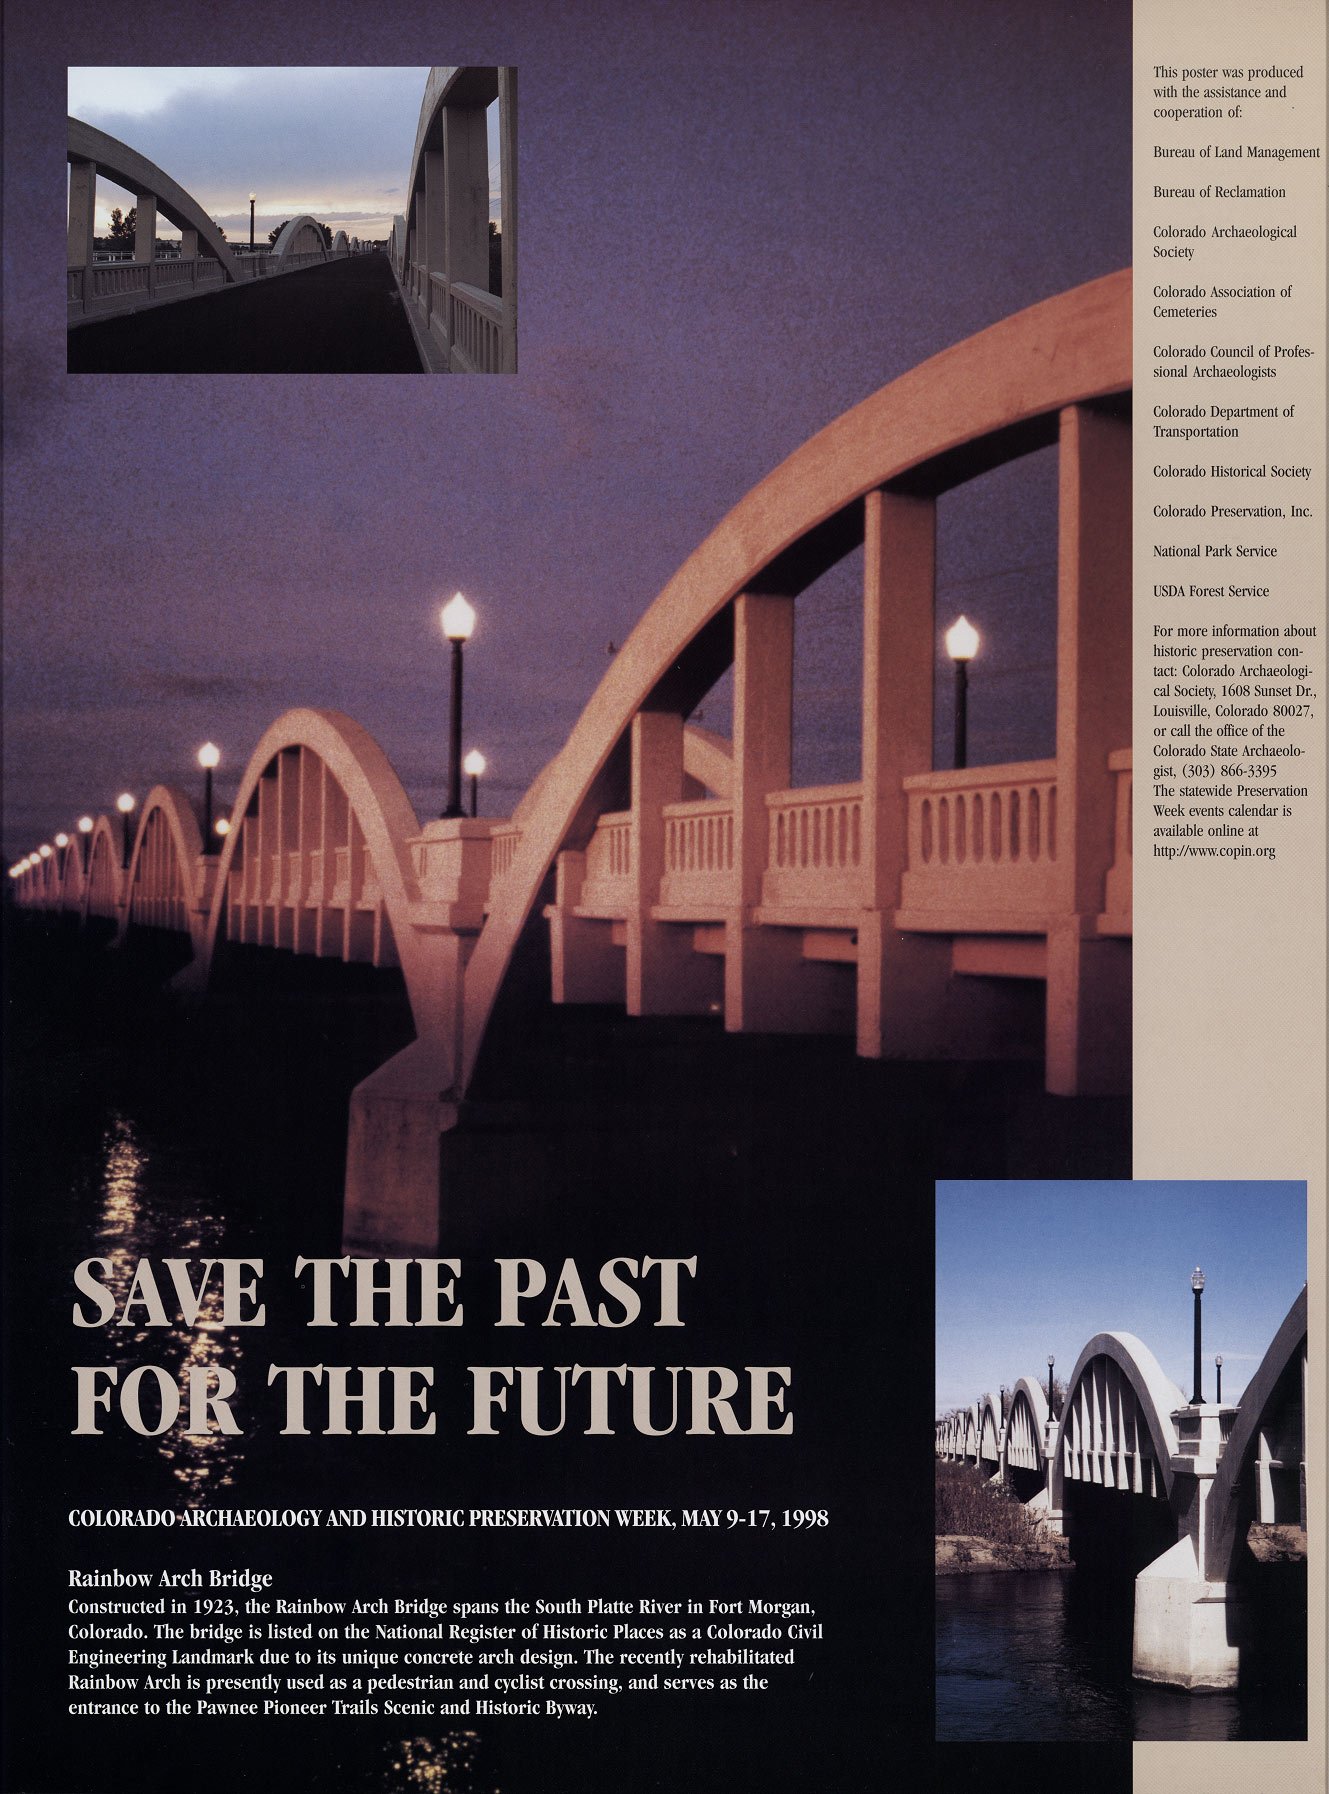 1998 Archaeology & Historic Preservation Week poster.